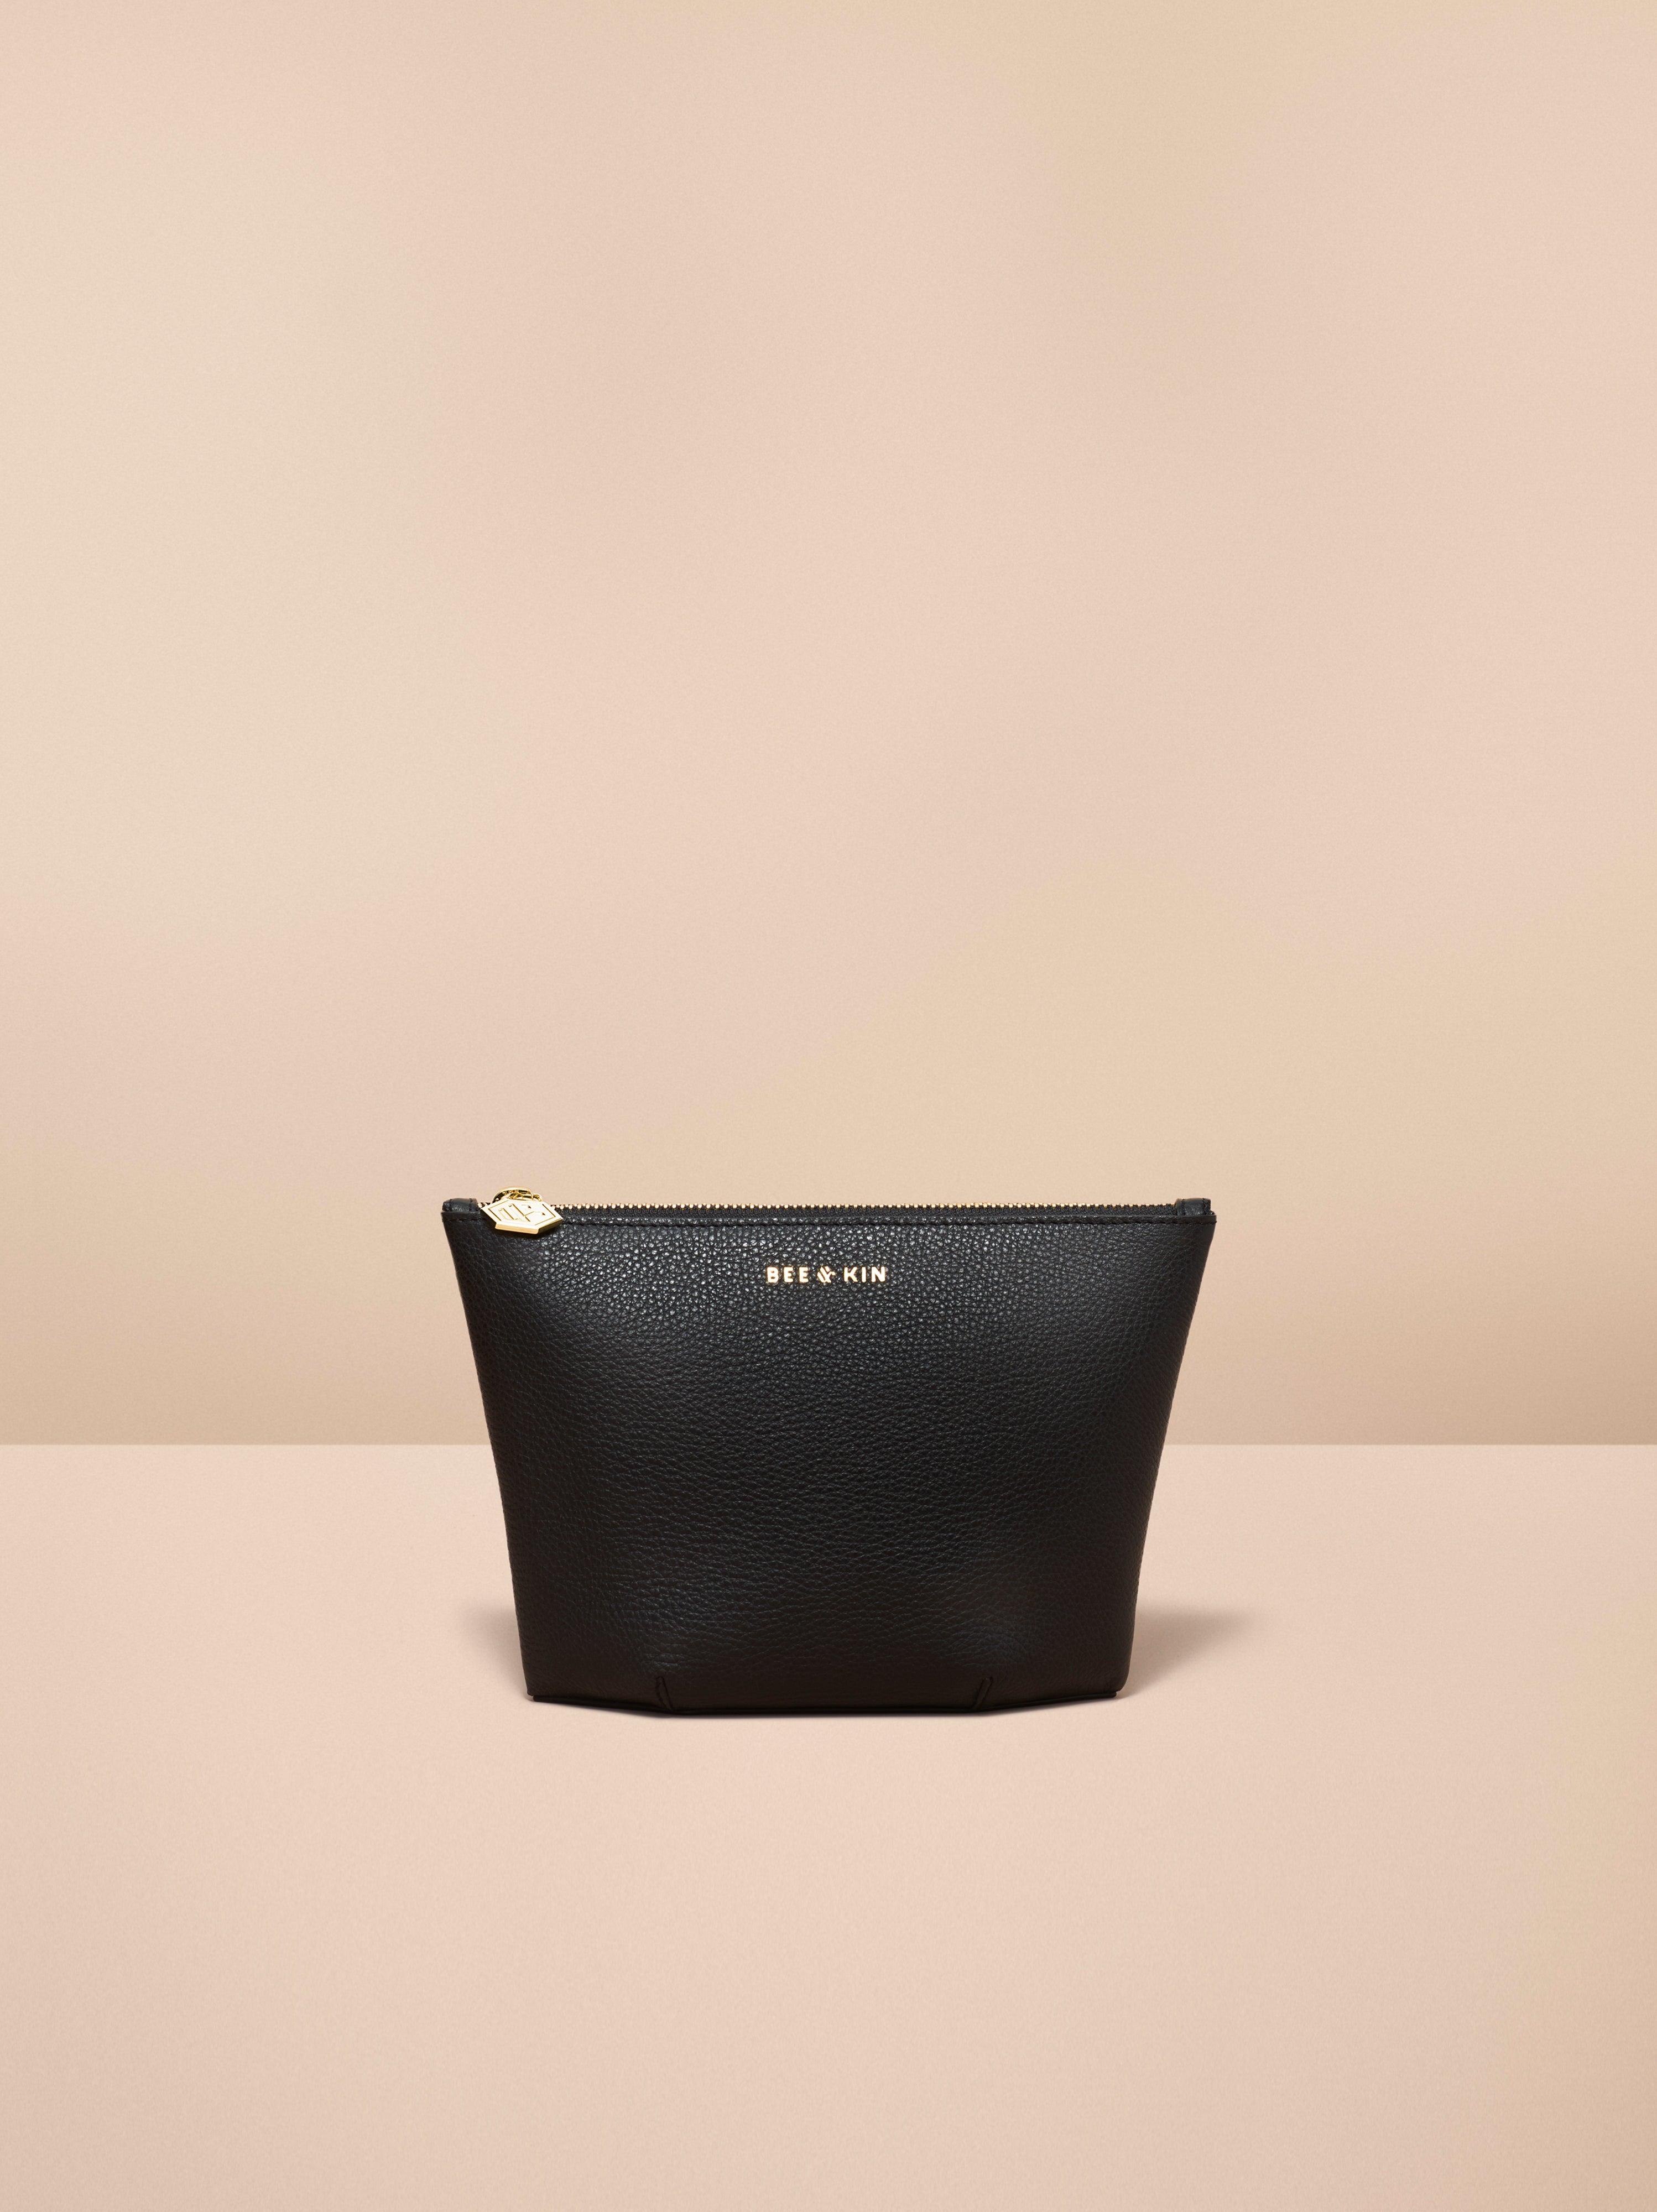 The Assistant - Black-Small Accessories-Bee-&-Kin-Italian-Leather-Tech-Forward-Handbags